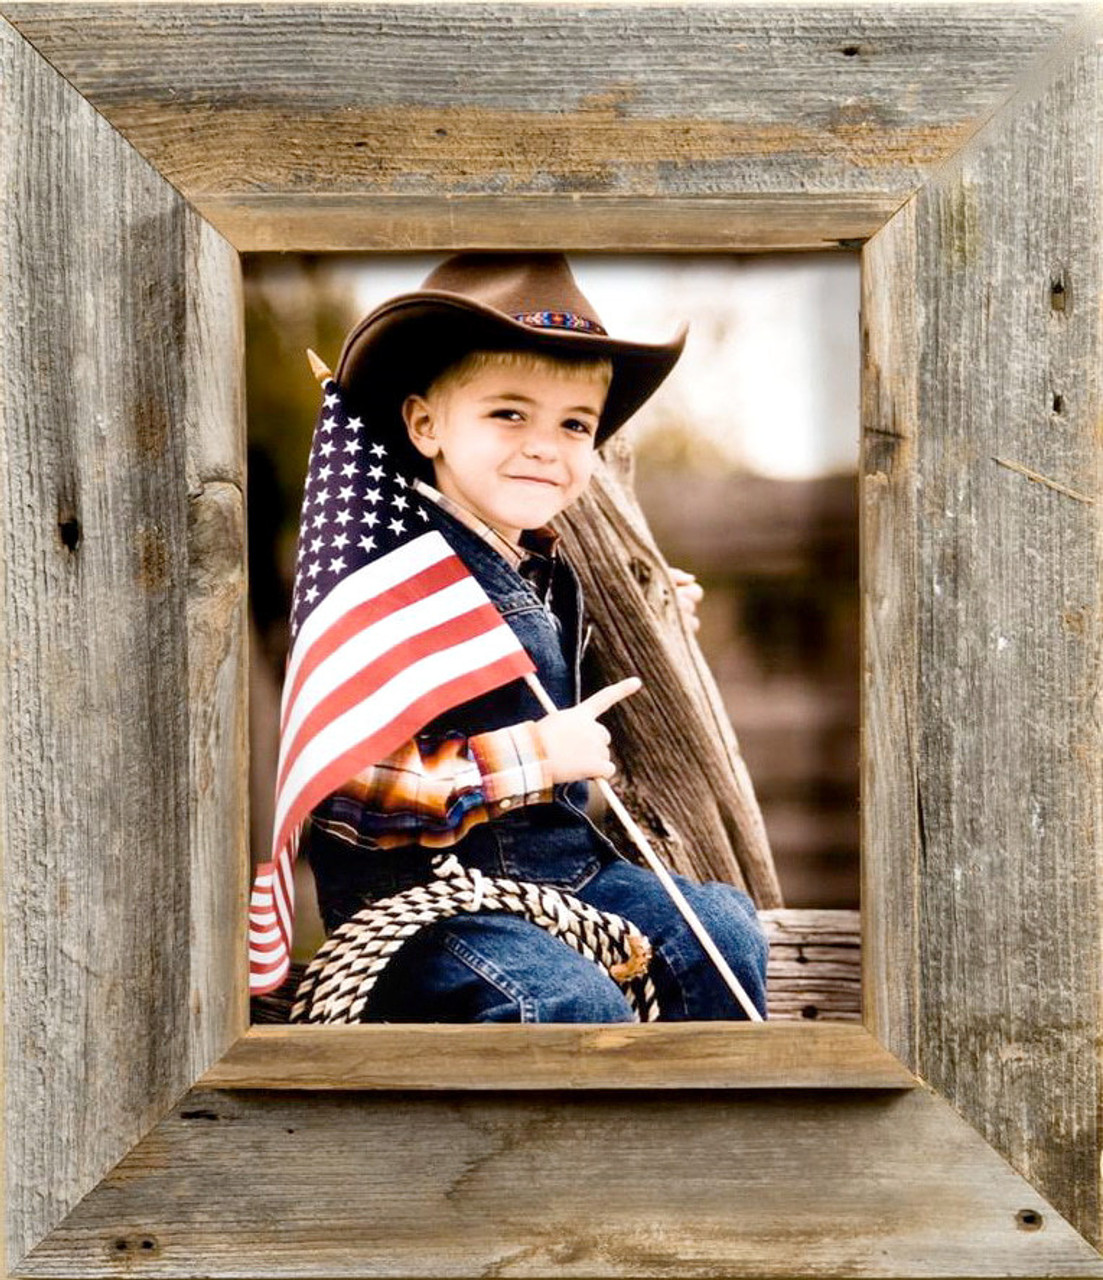 Western Picture Frames Rustic Wood Distressed Frame 8x10